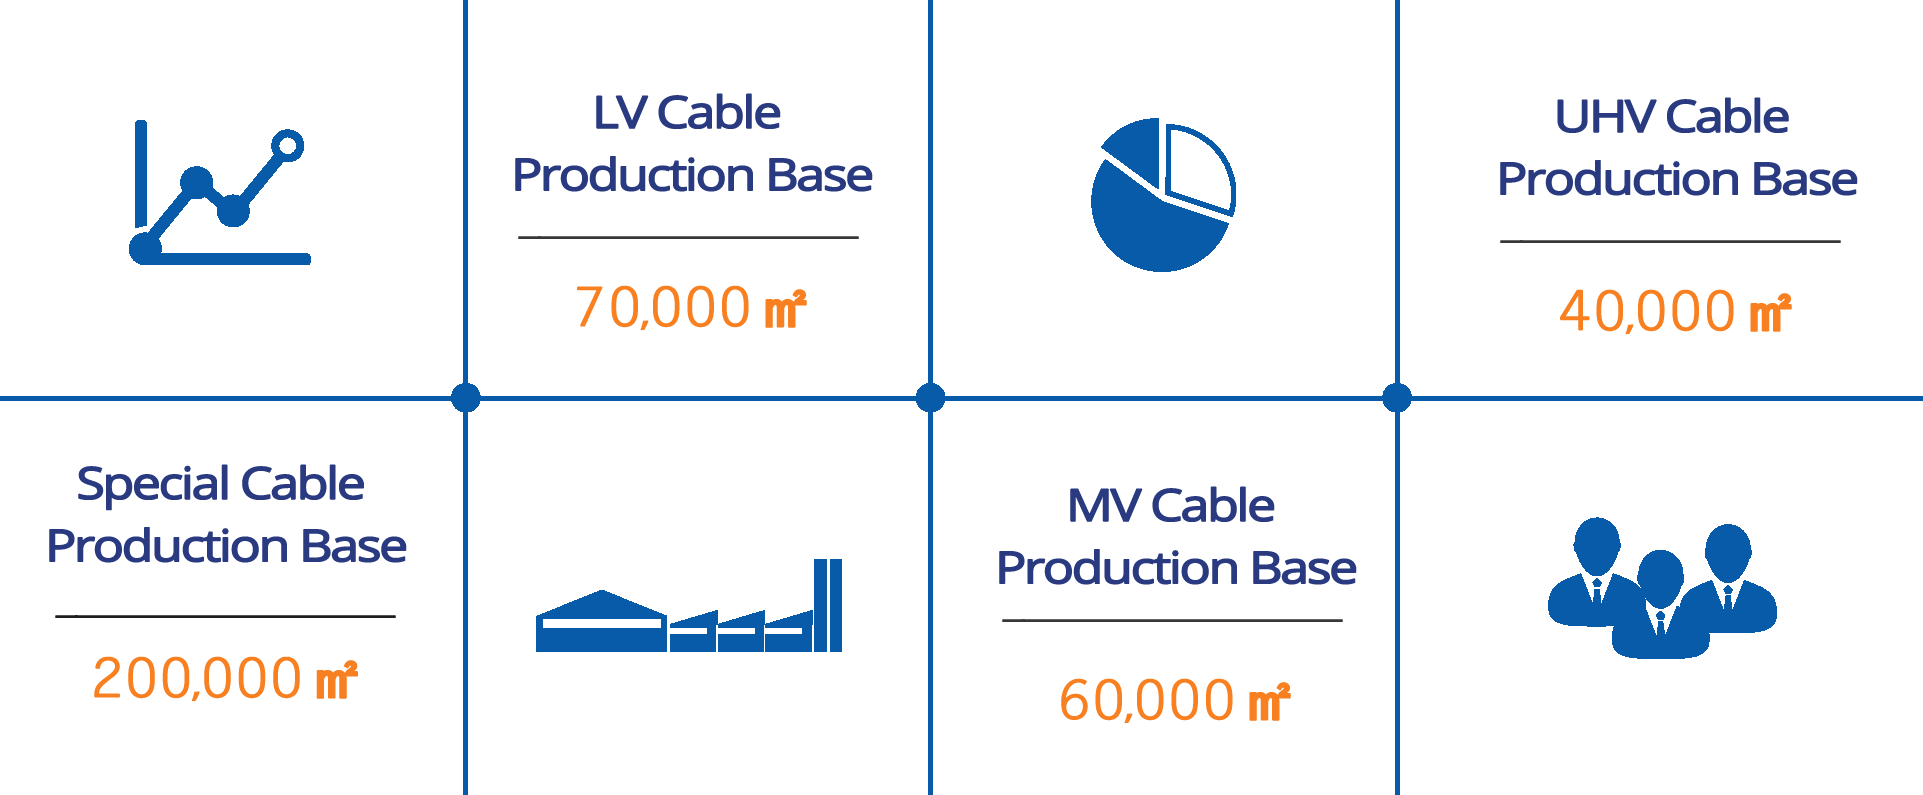 LV Cable Production Base